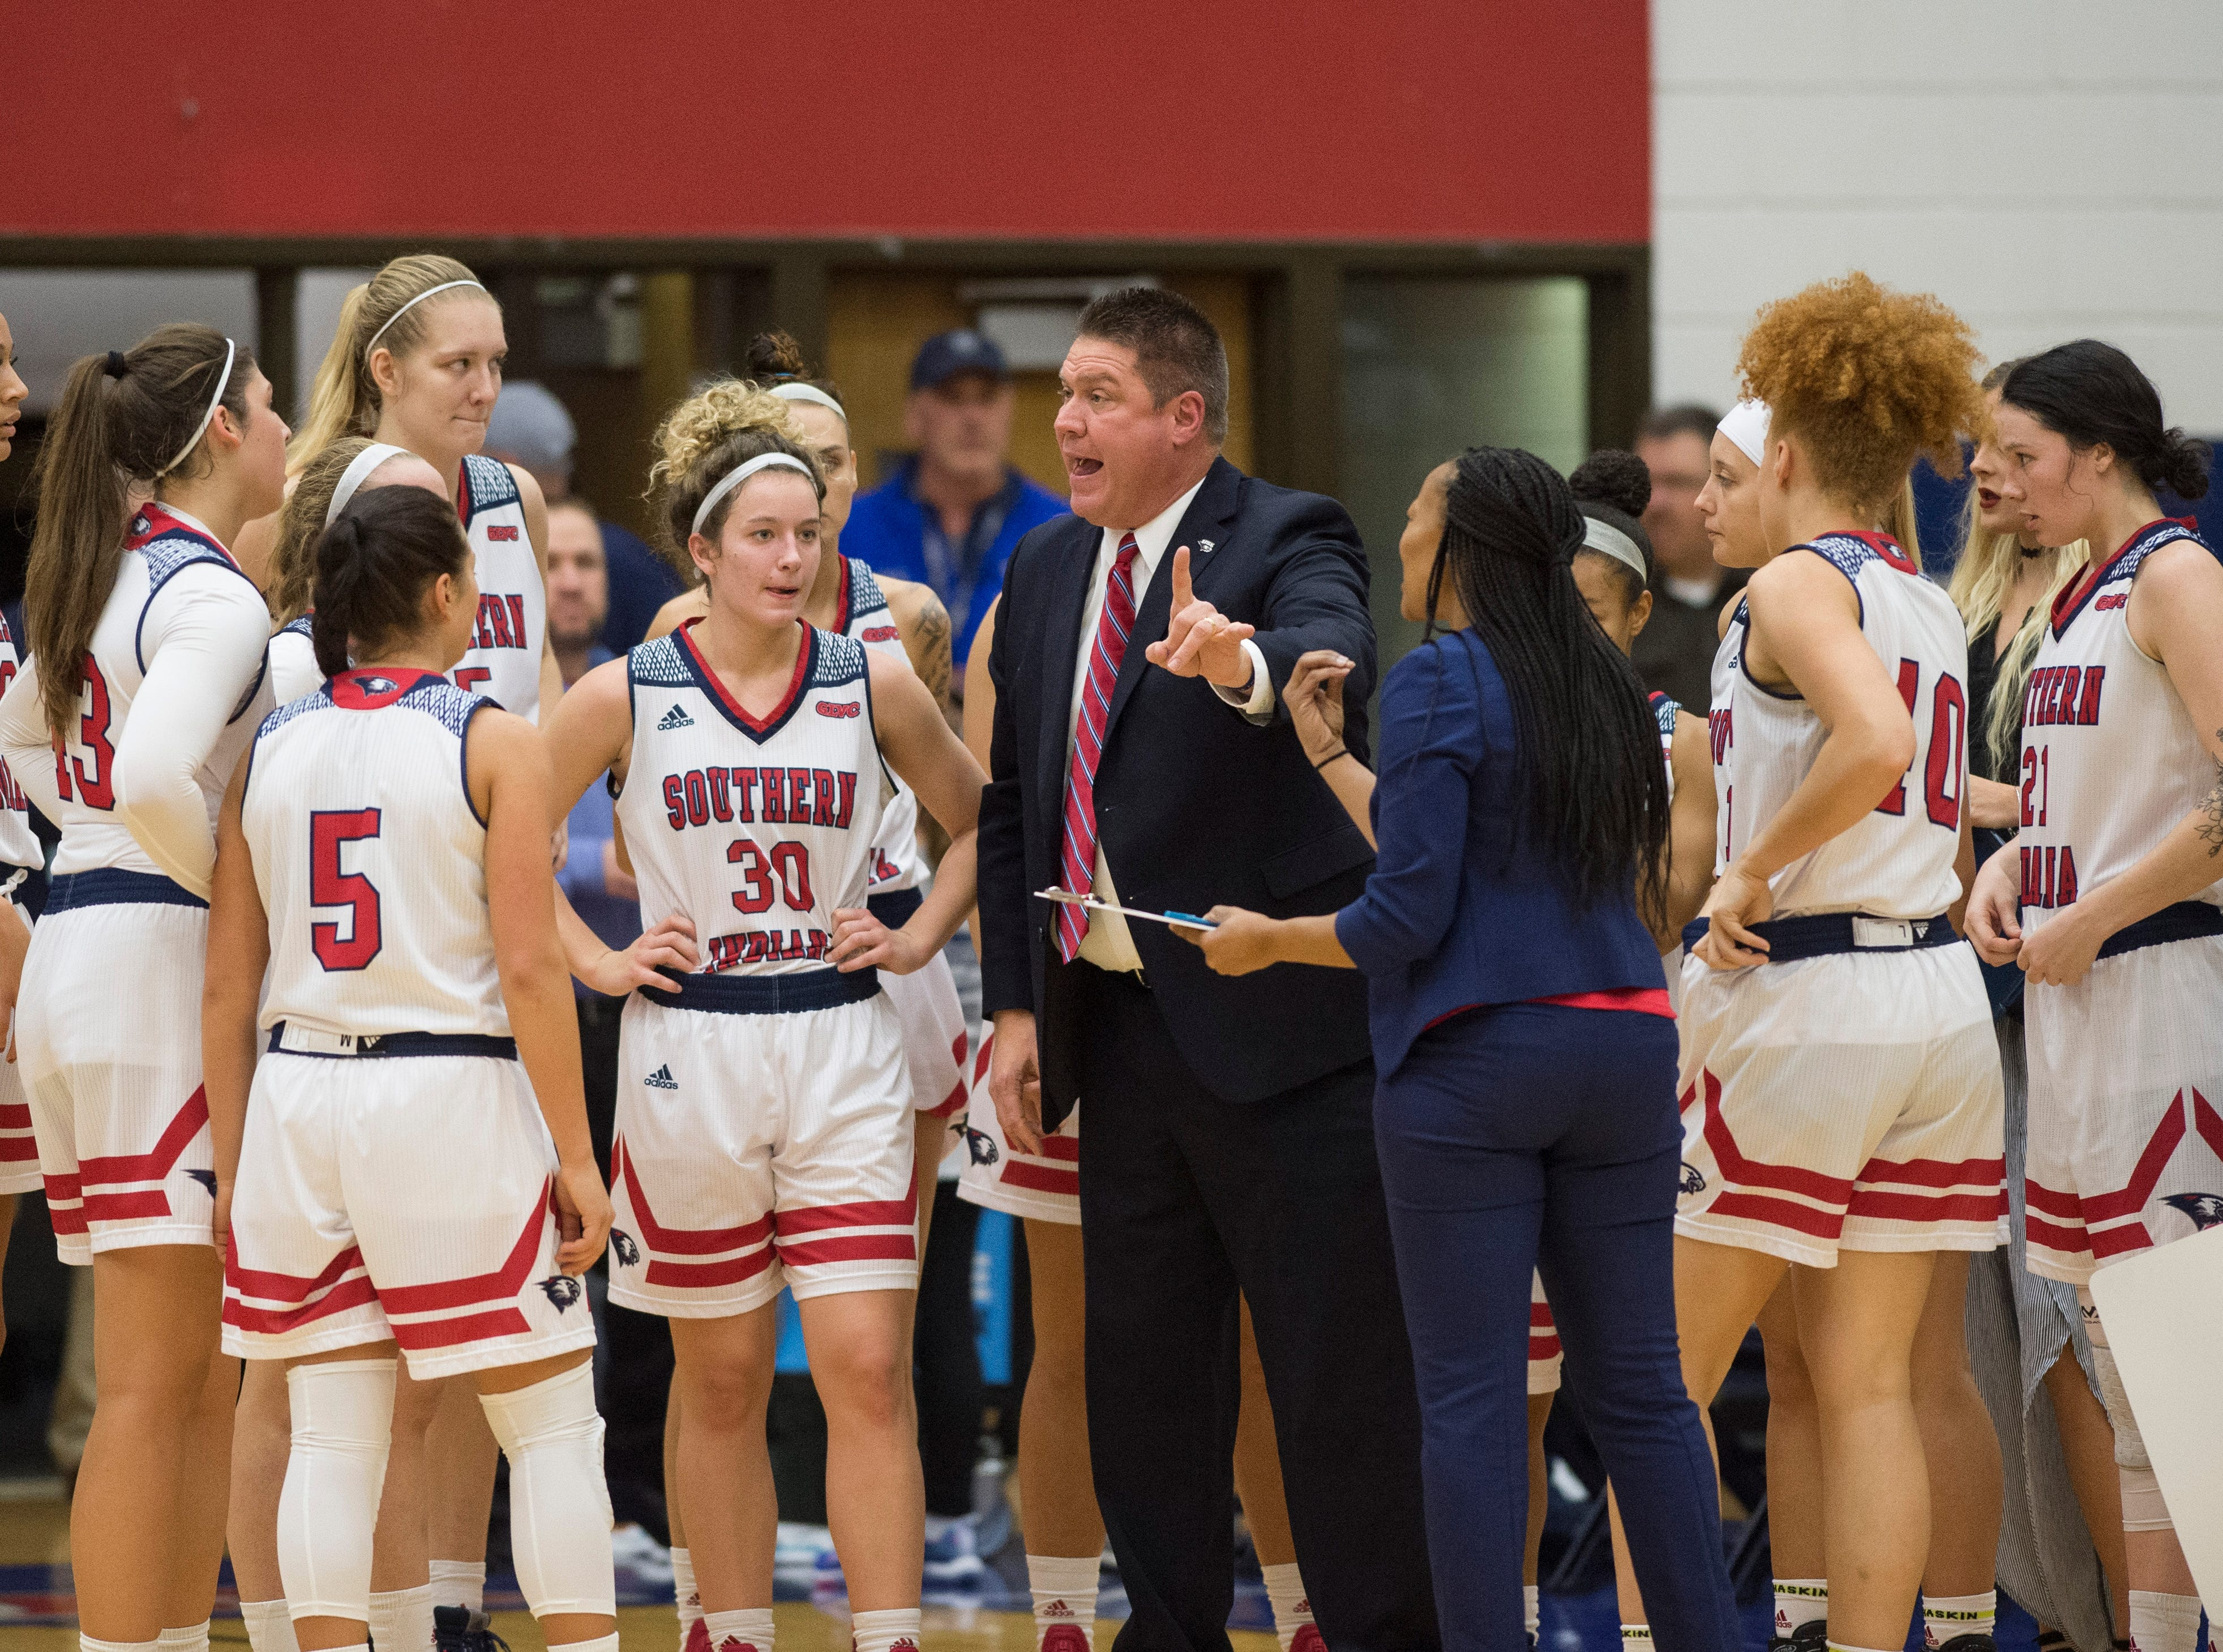 USI Women's Basketball Head Coach Rick Stein directs a play during a timeout in the USI vs Bellarmine game at the PAC Saturday, Dec. 1, 2018.